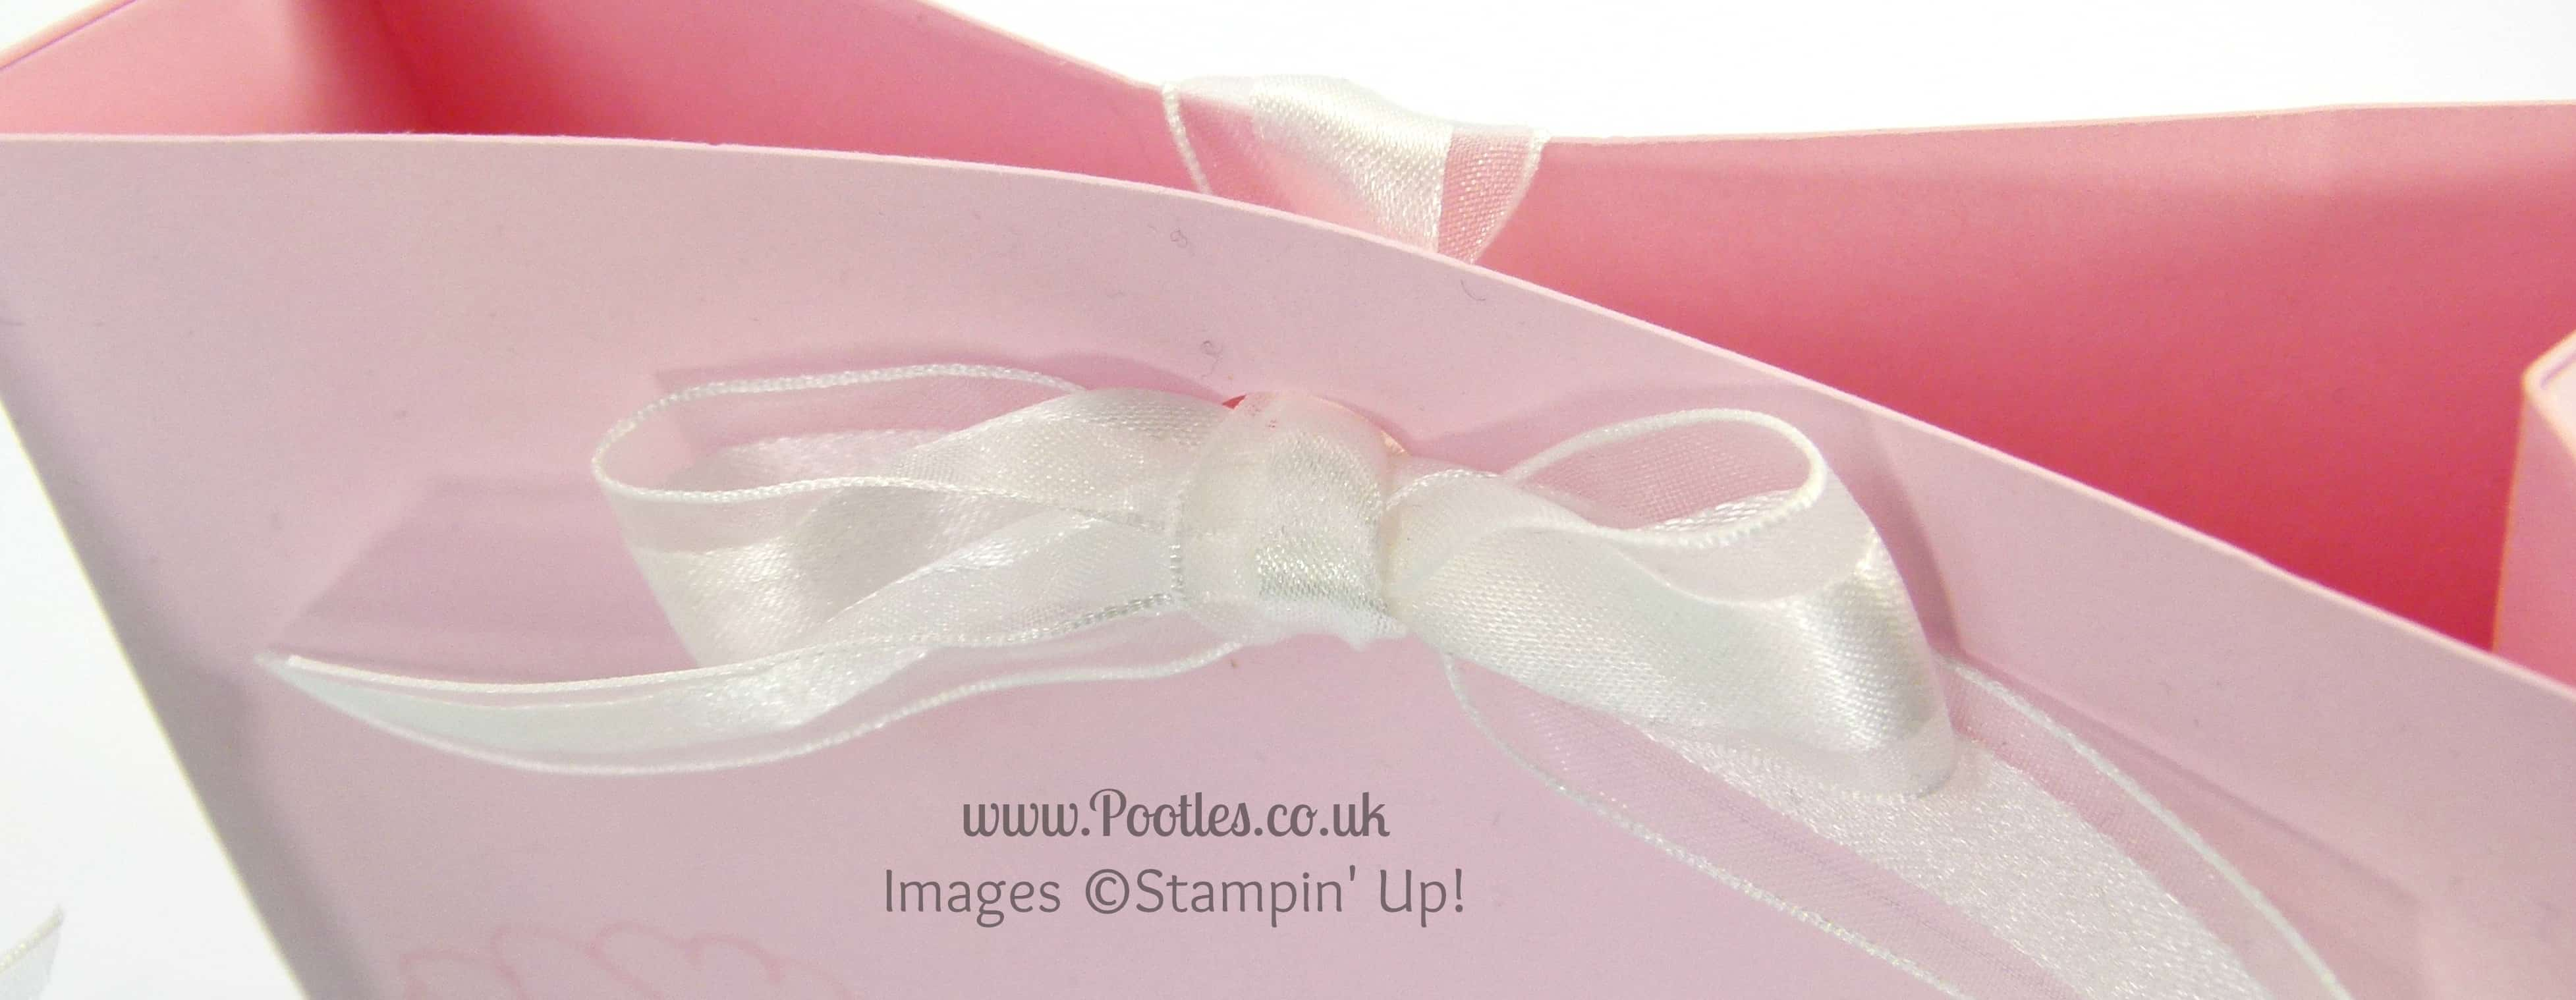 Stampin' Up! UK Demonstrator Pootles - Pandora Style Bag with Bow Close Tutorial Bow Close Up